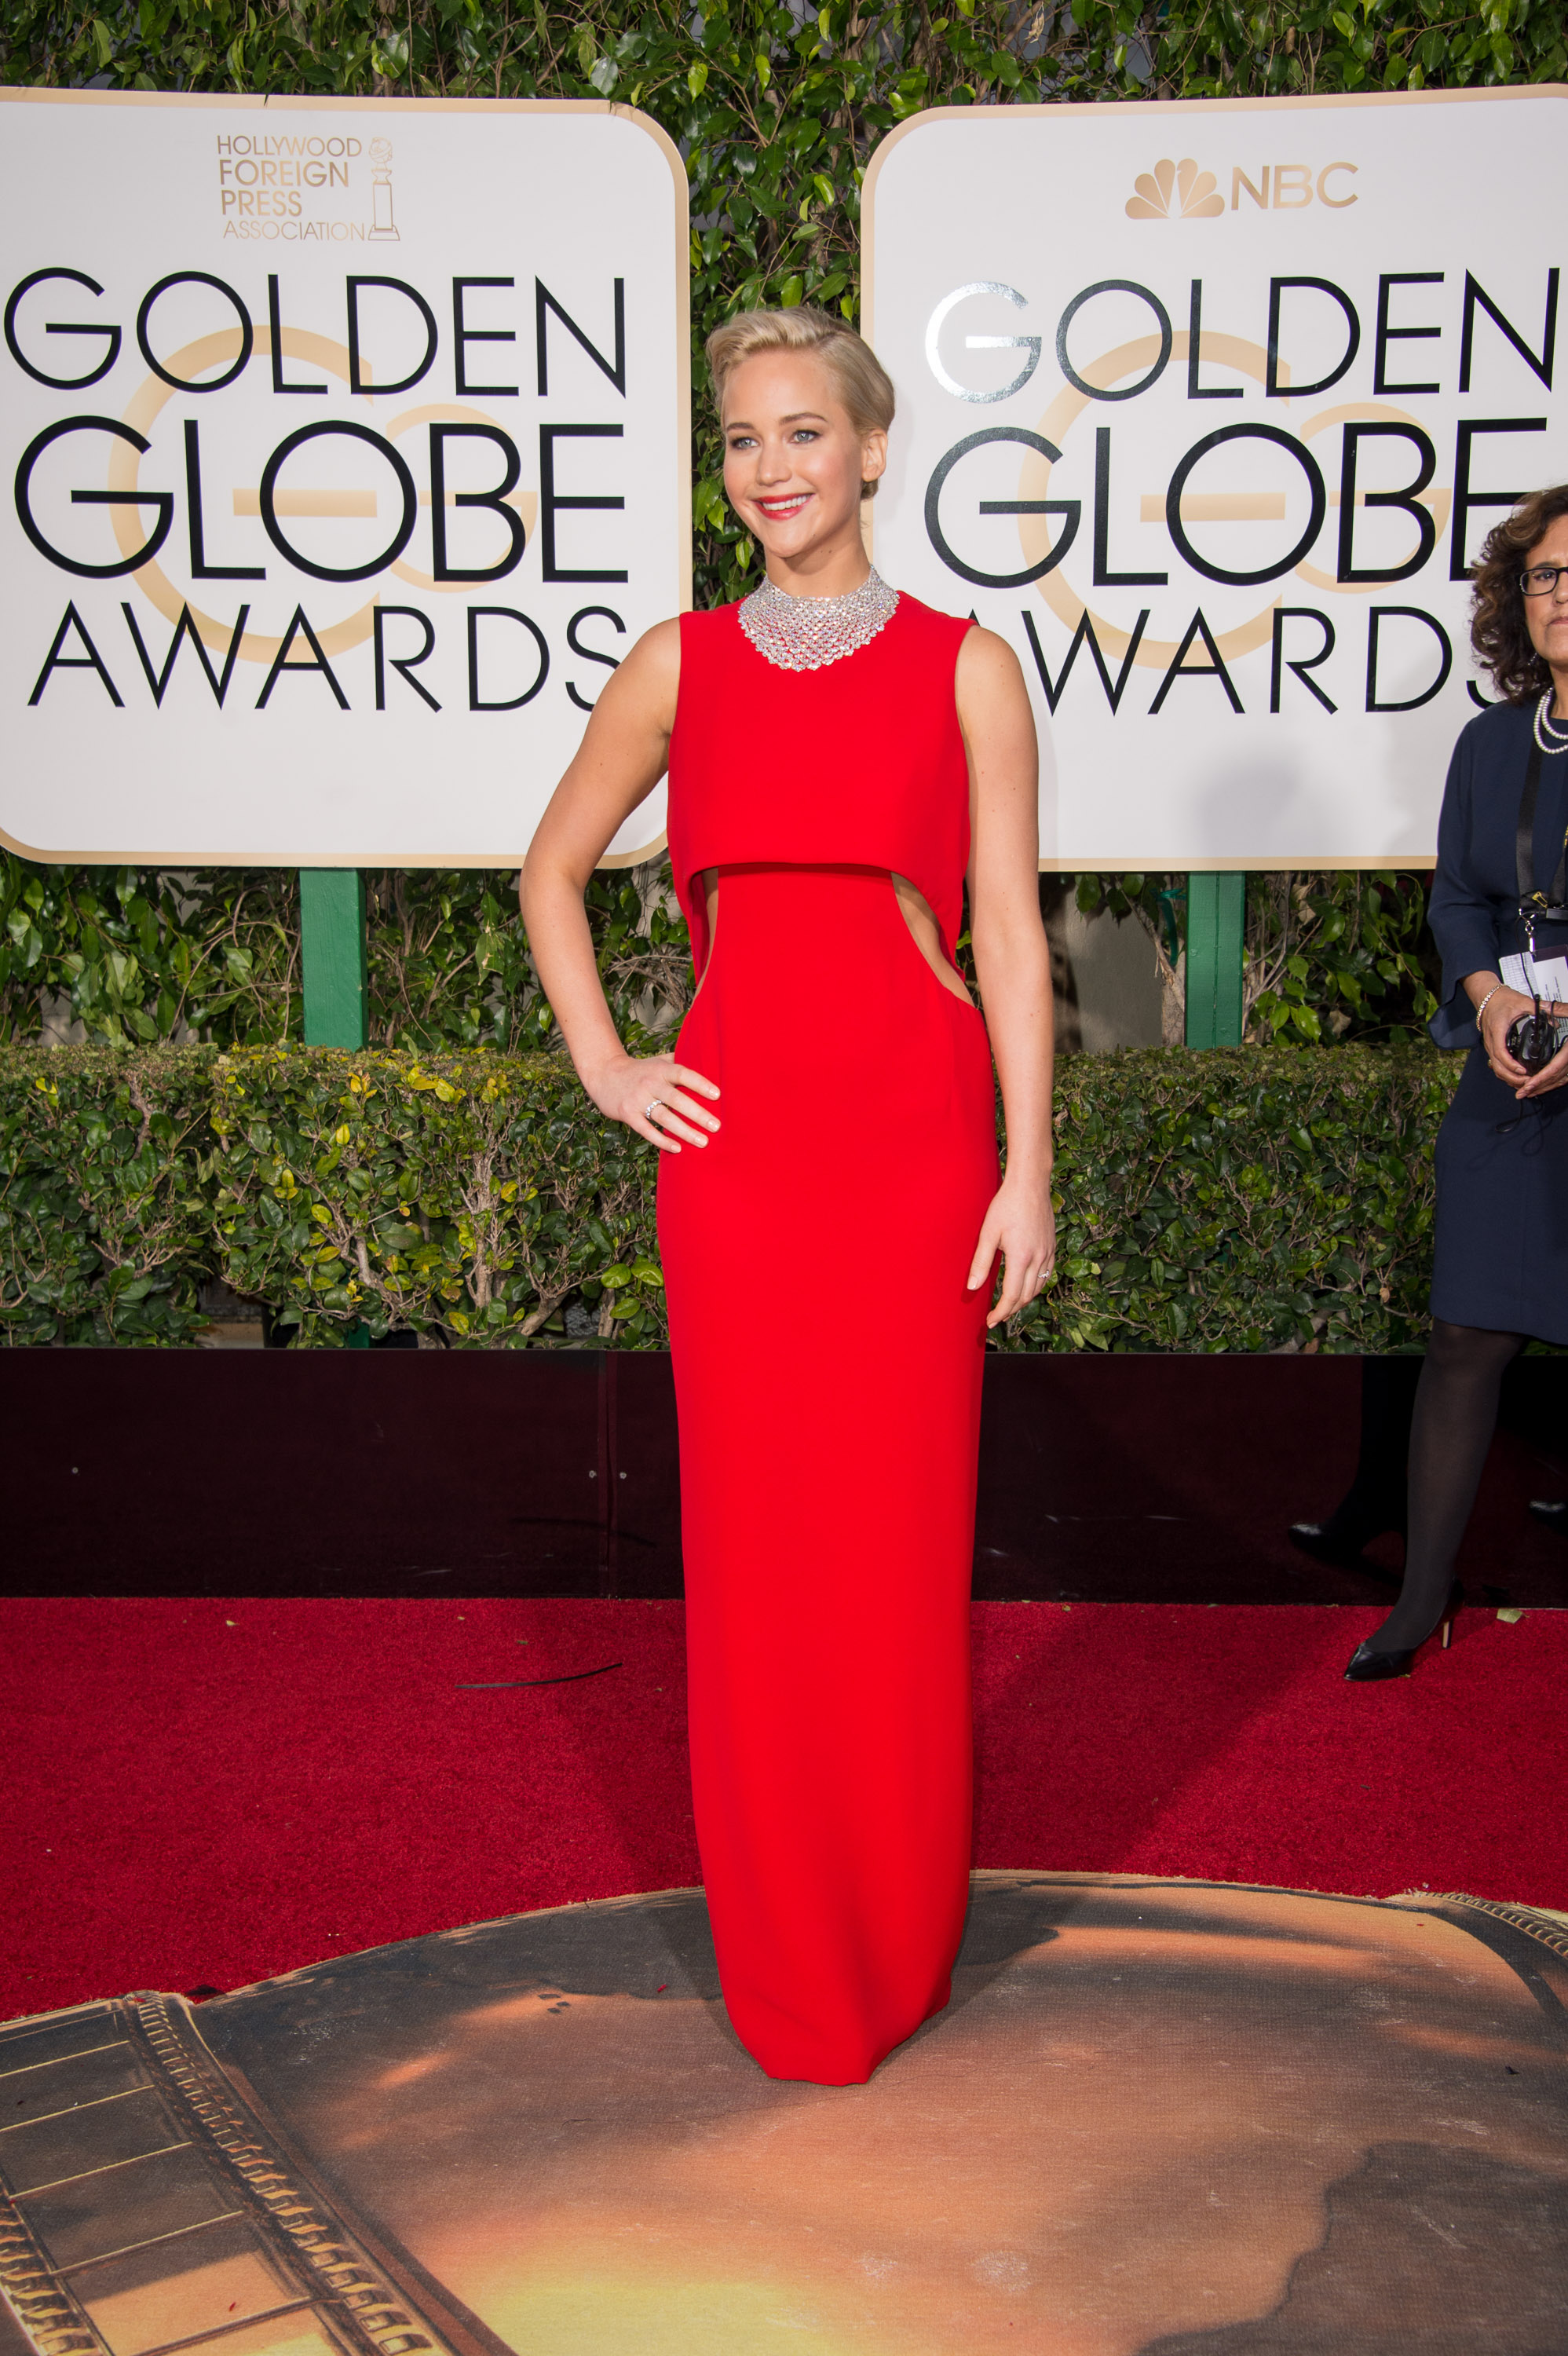 """Nominated for BEST PERFORMANCE BY AN ACTRESS IN A MOTION PICTURE – COMEDY OR MUSICAL for her role in """"Joy,"""" actress Jennifer Lawrence attends the 73rd Annual Golden Globes Awards at the Beverly Hilton in Beverly Hills, CA on Sunday, January 10, 2016."""